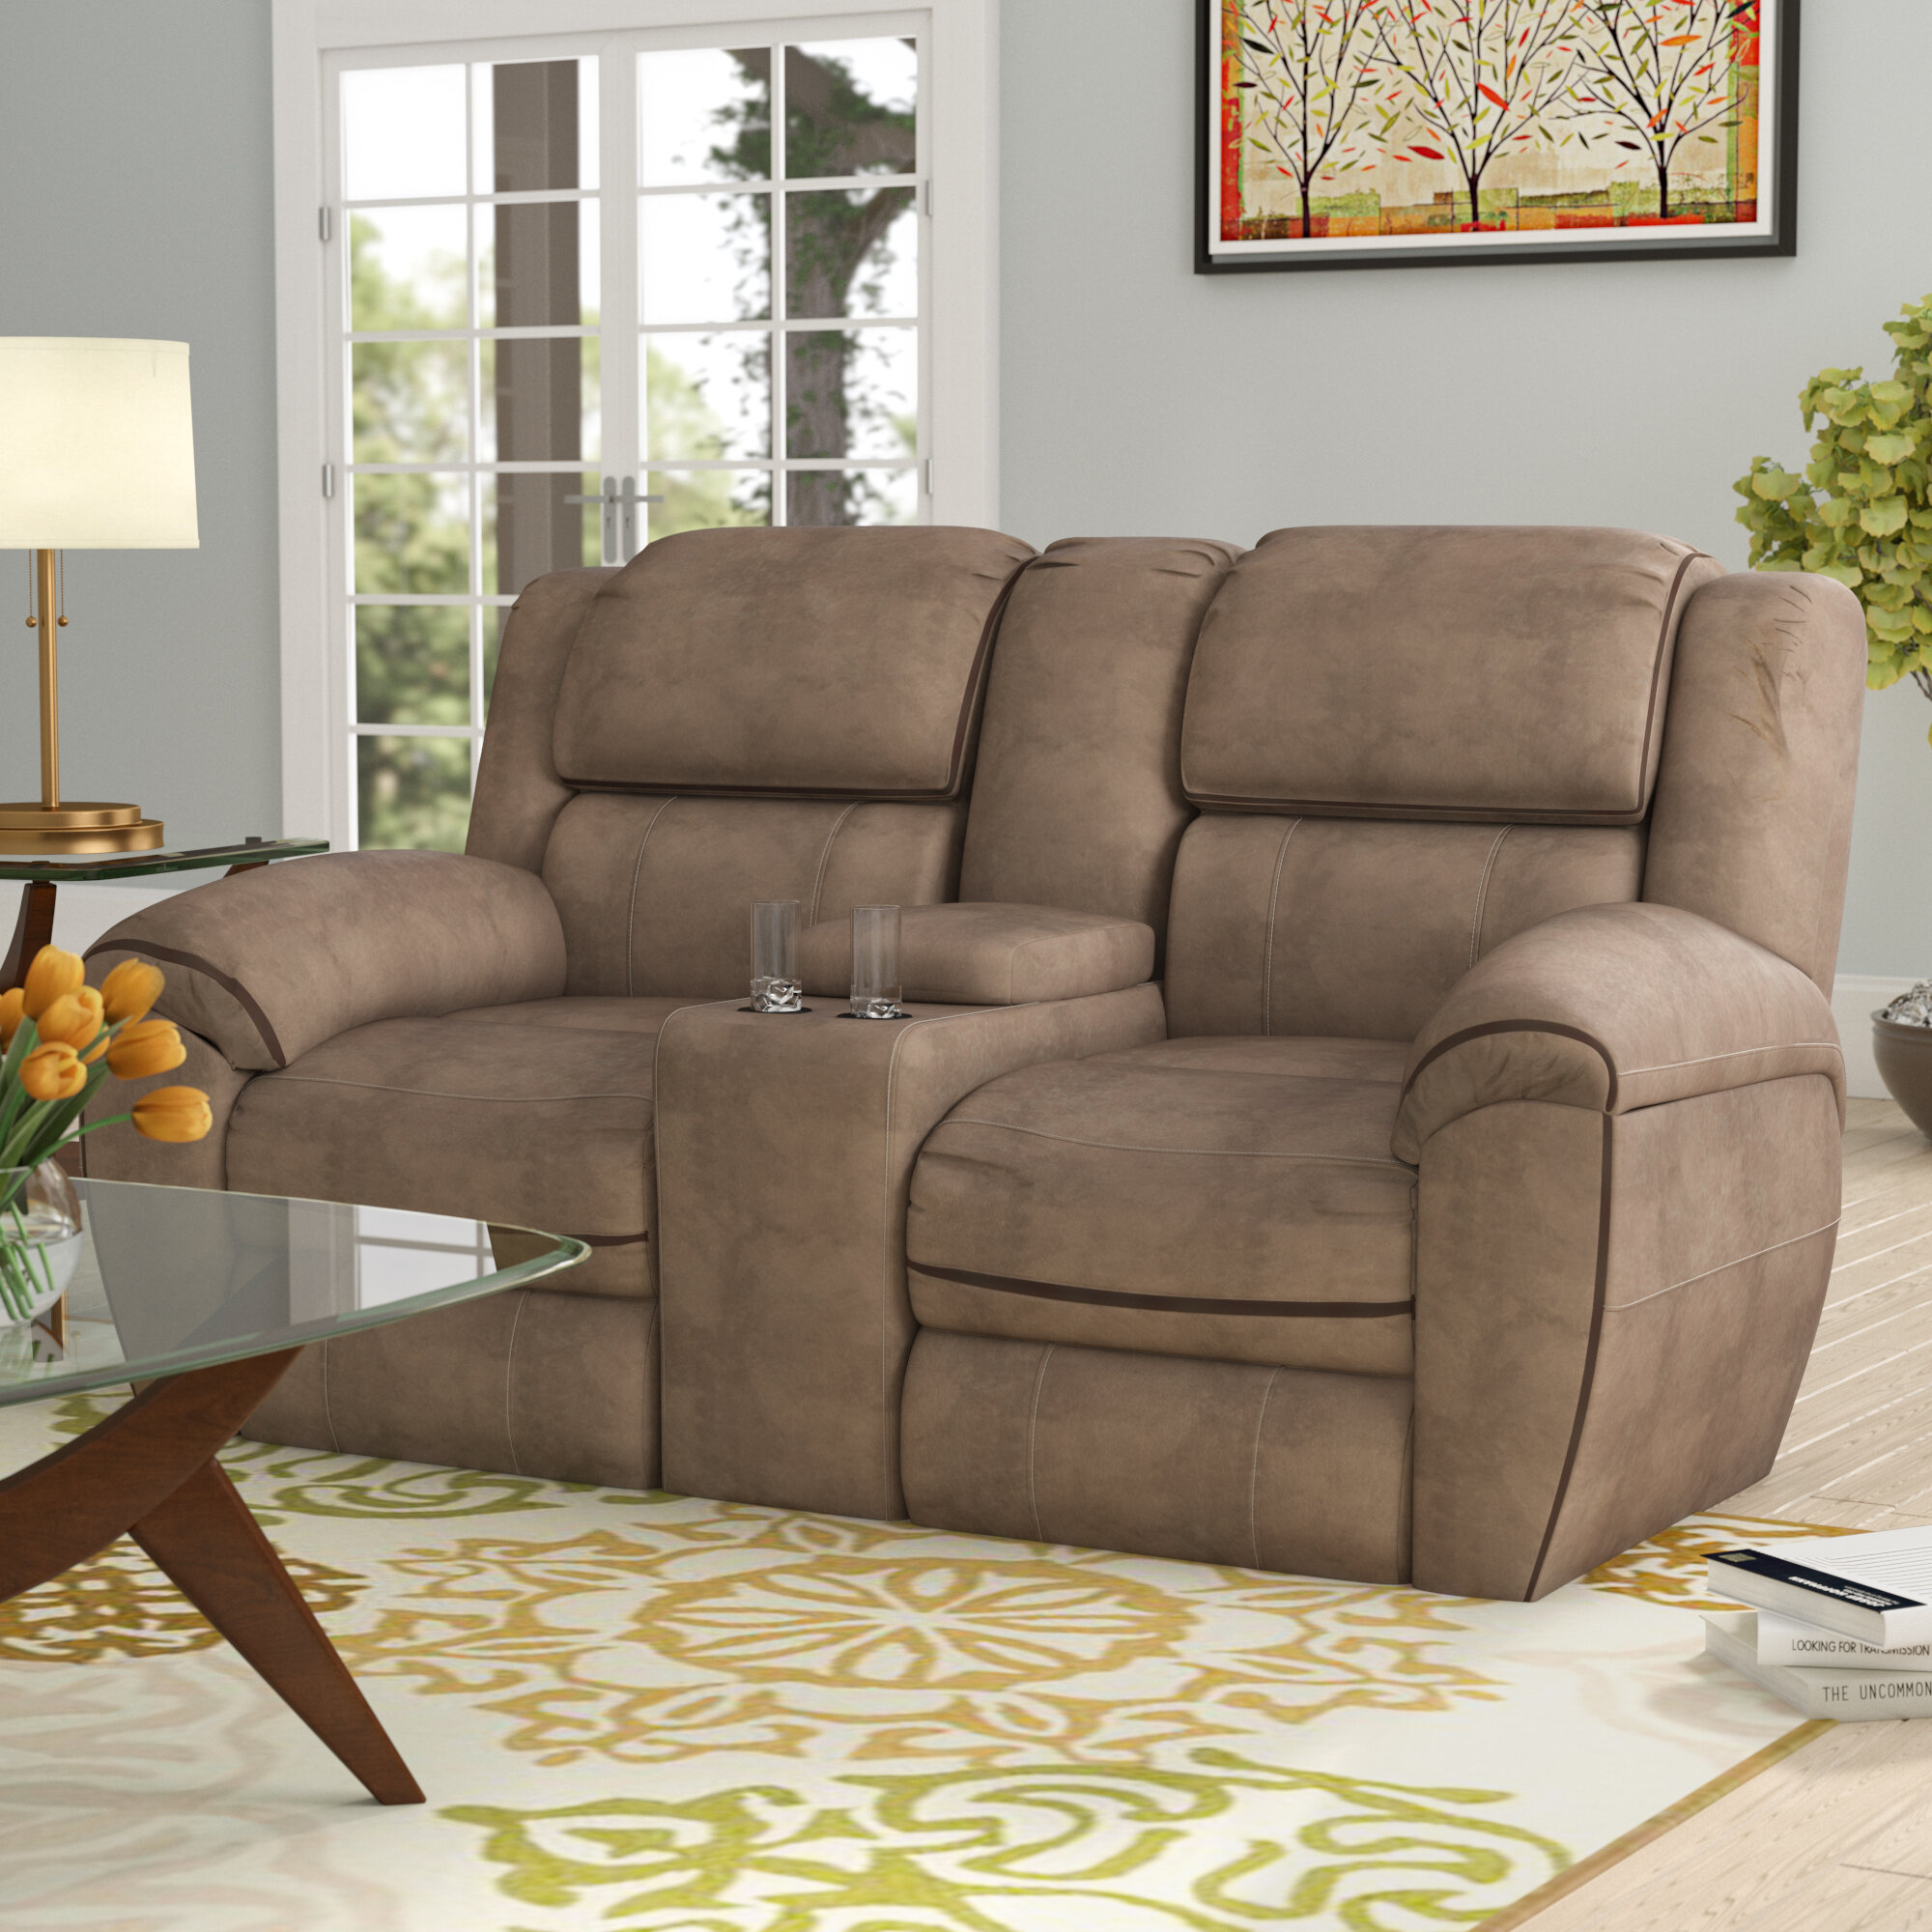 email recliner high share a mystic flexsteel com double product resolution download via image